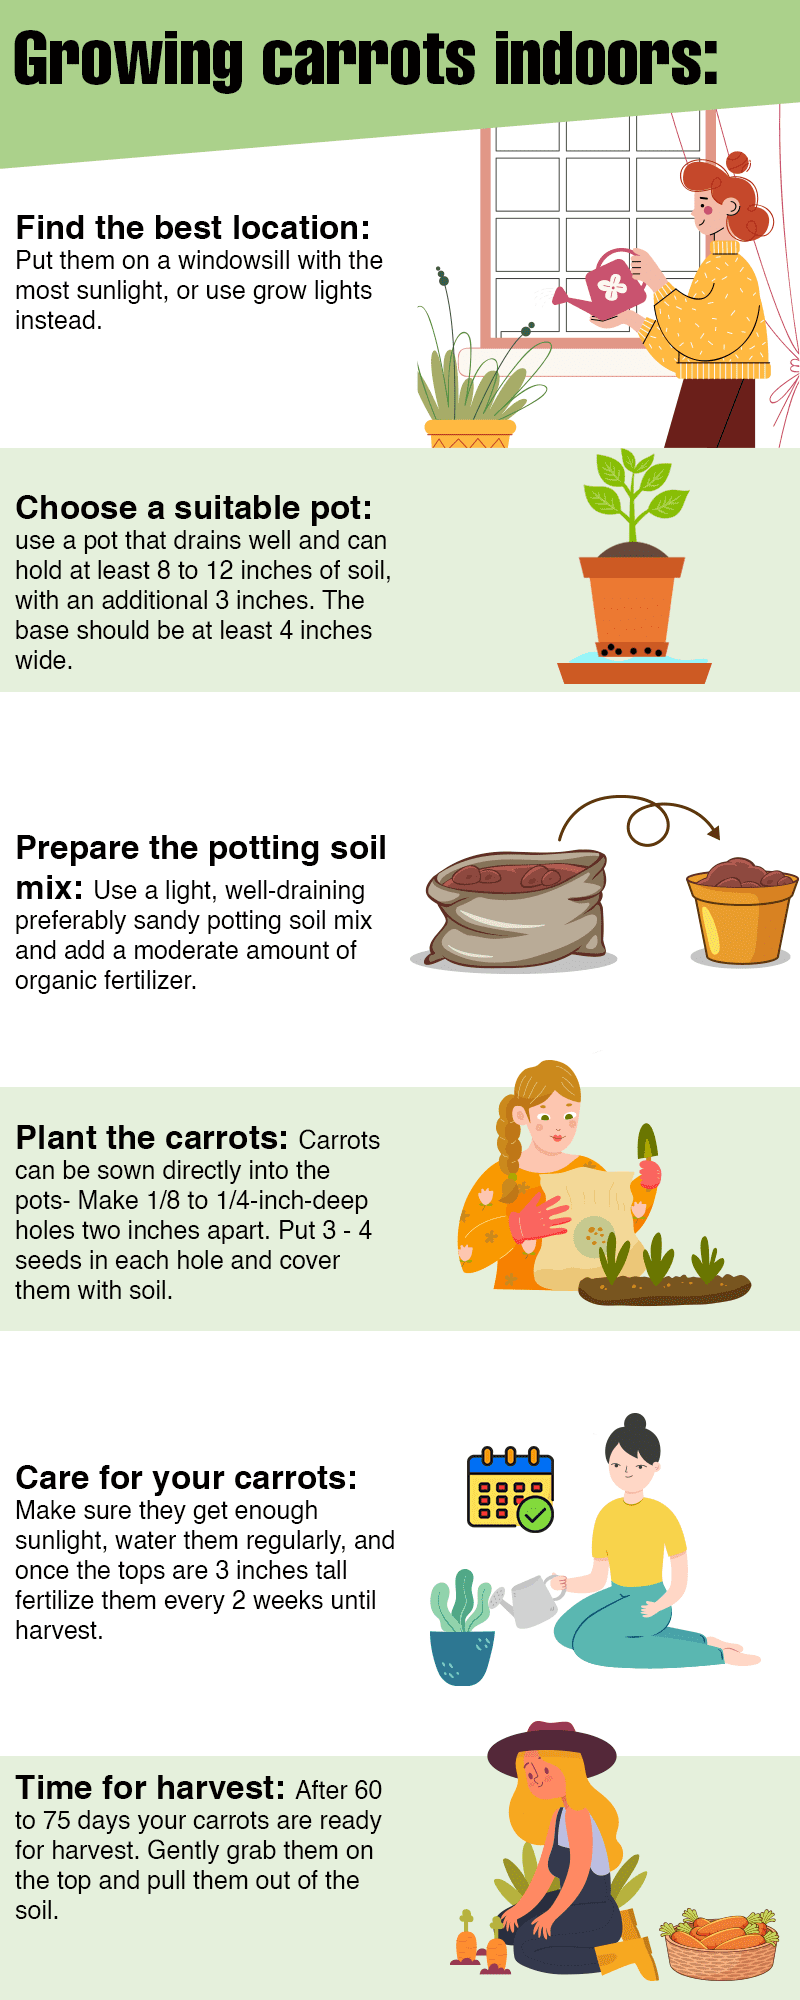 How to Grow Carrots Indoors infographic